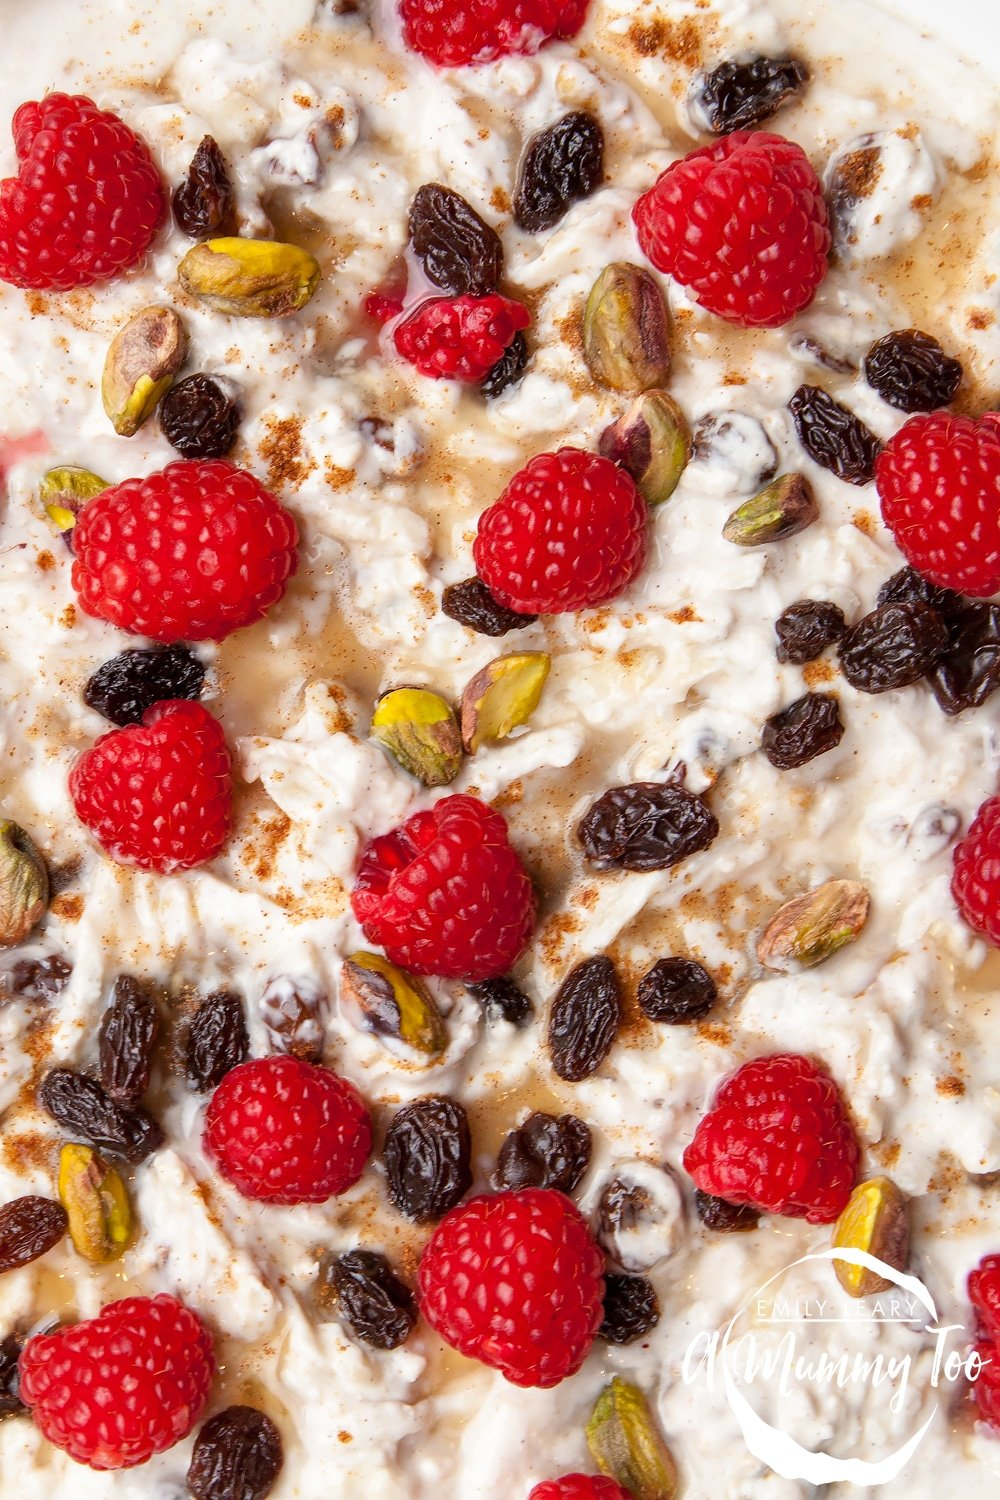 This delicious overnight breakfast bircher is rich with calcium, fruit and nuts